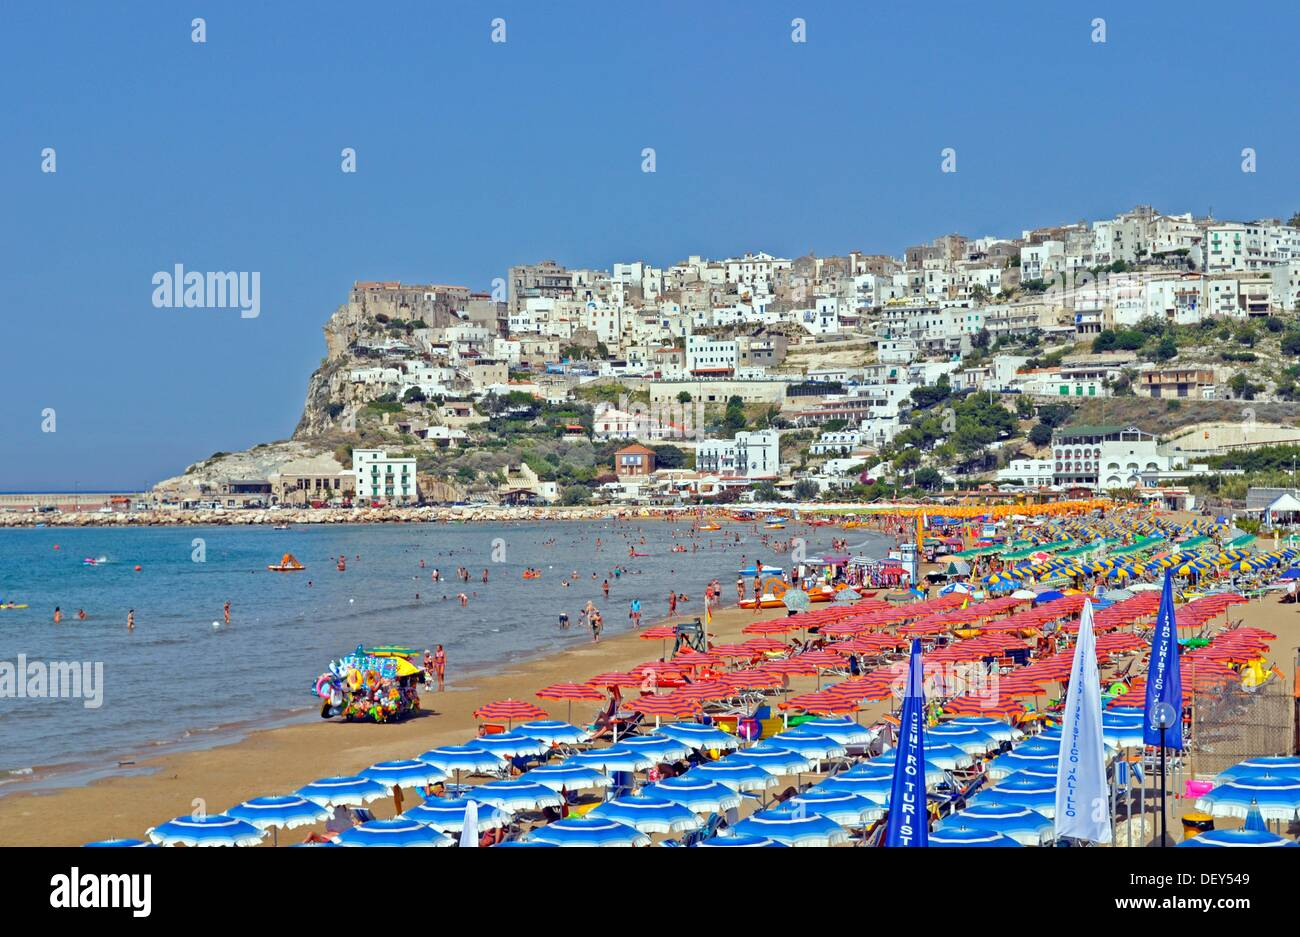 Peschici Italy  city photos gallery : Peschici, Puglia, Italy Stock Photo, Royalty Free Image: 60833033 ...